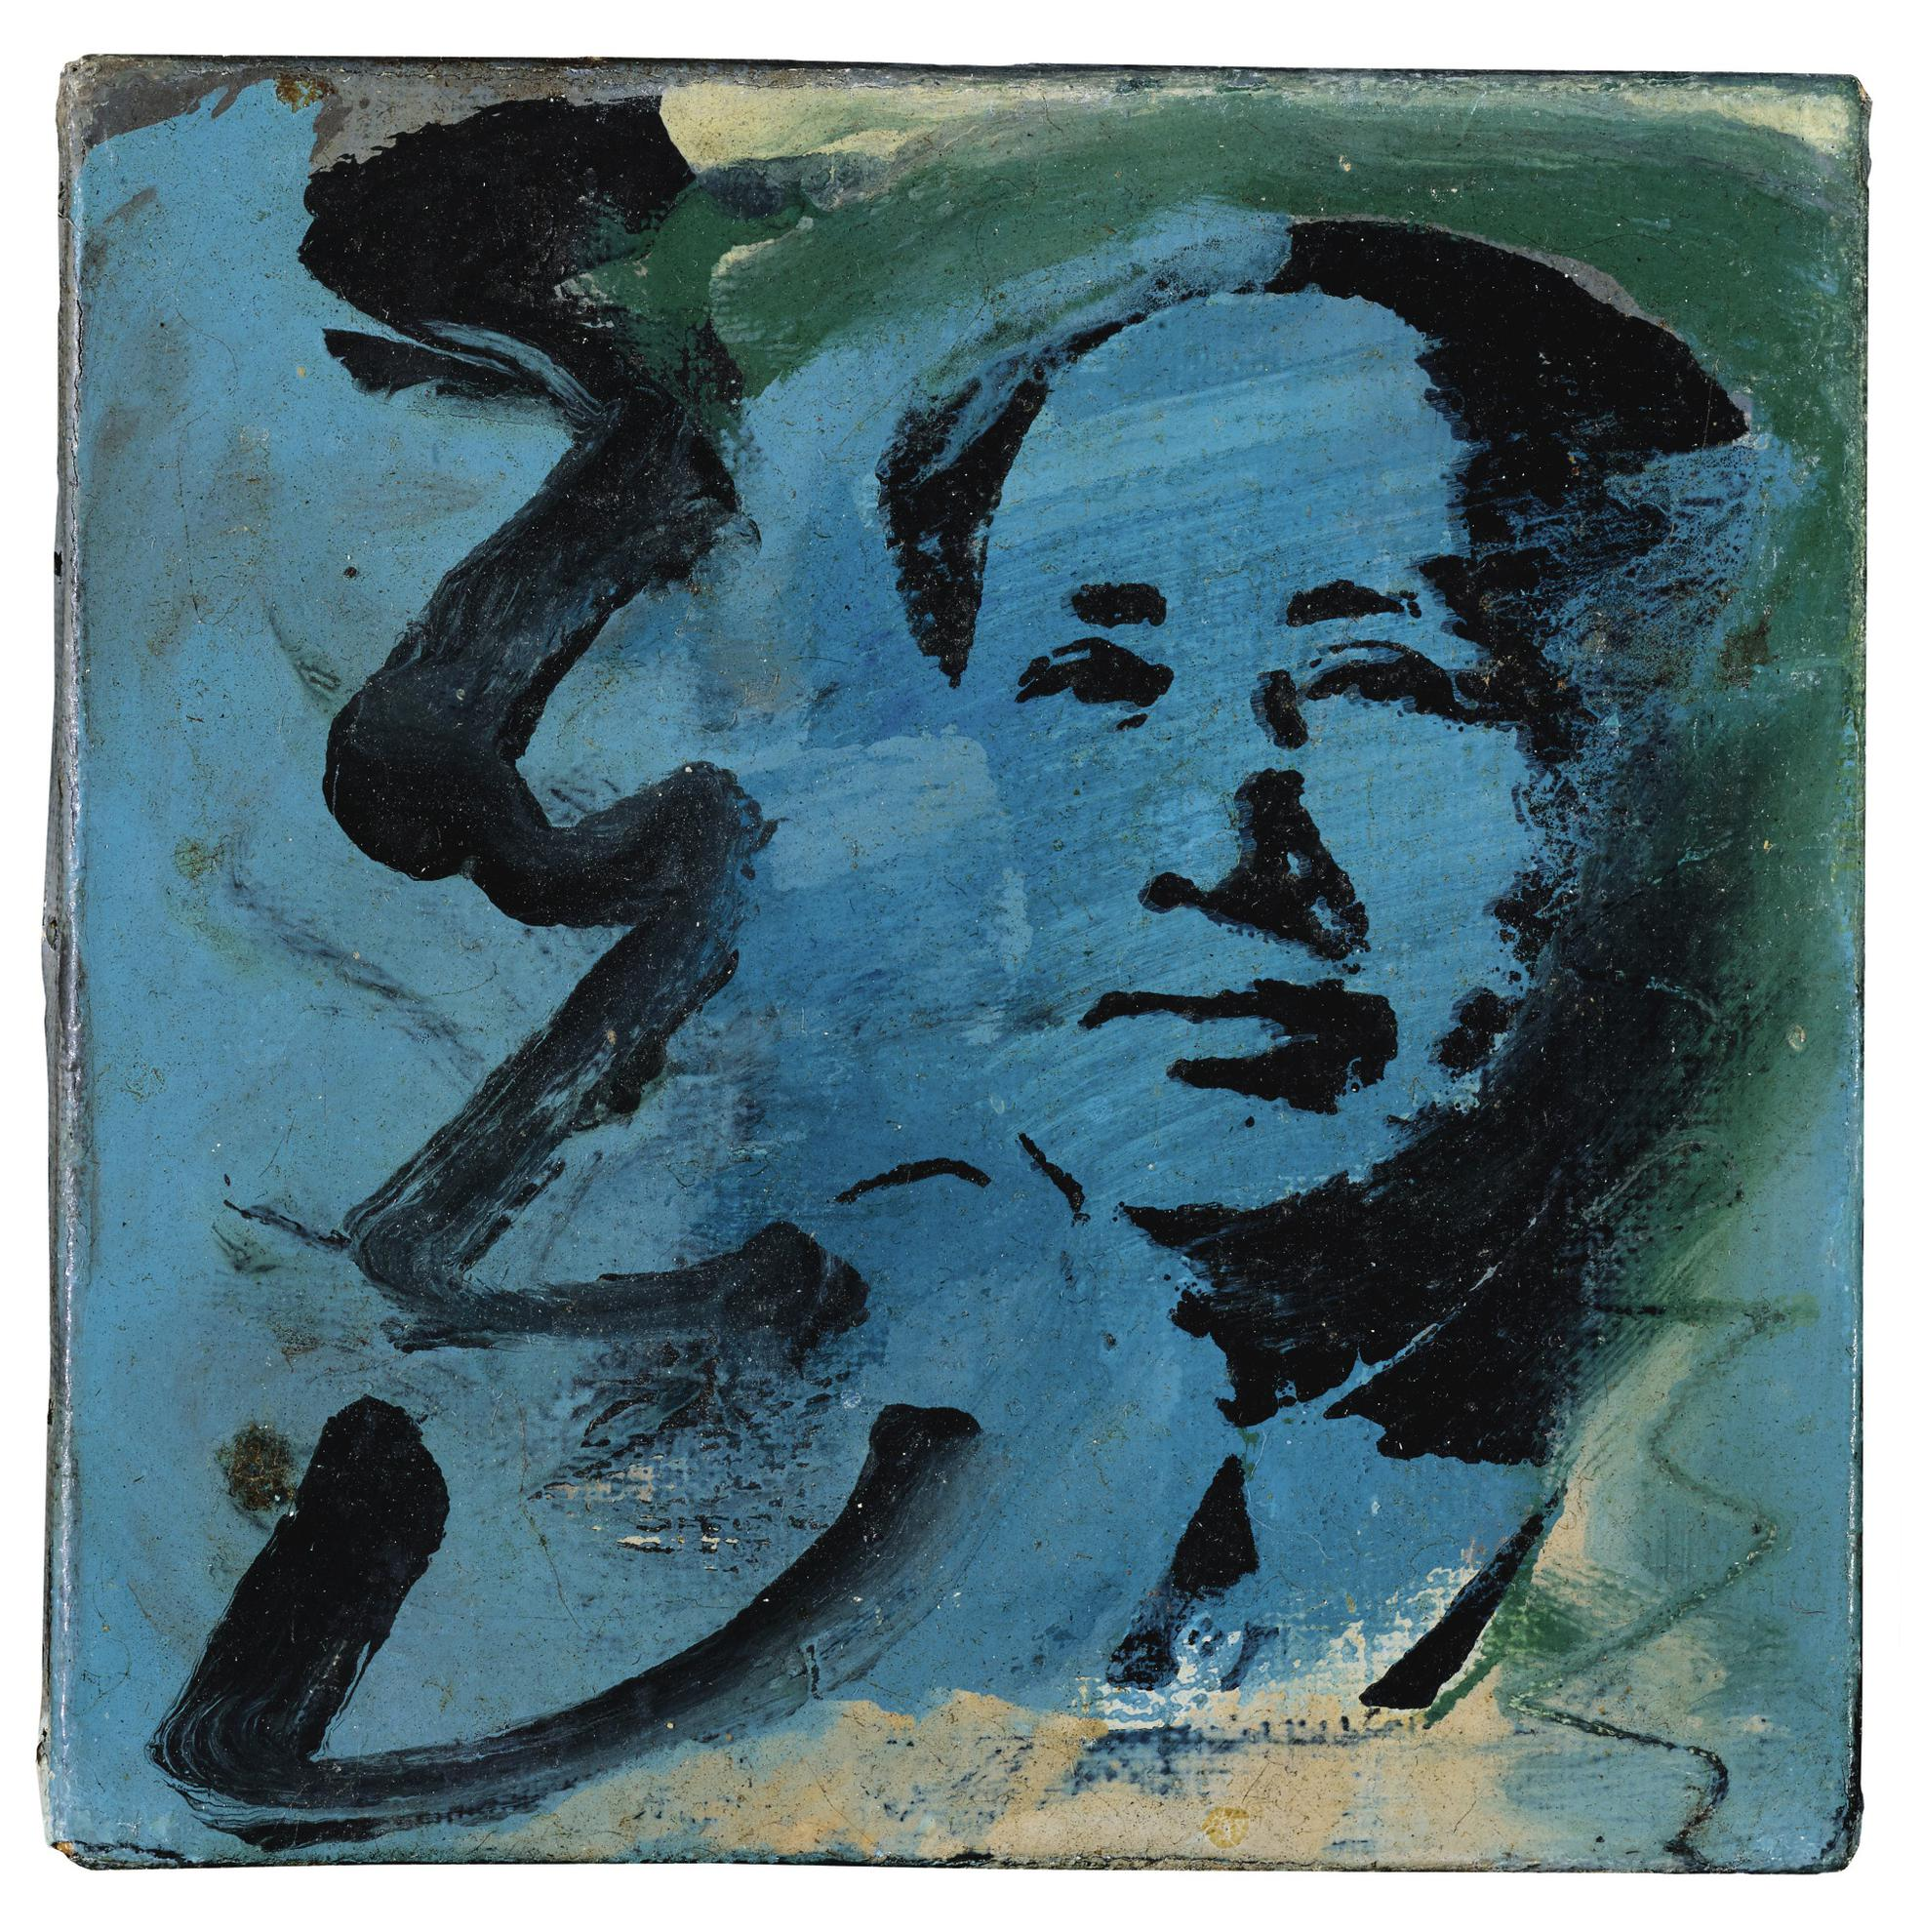 Richard Pettibone-Andy Warhol, Mao-1975